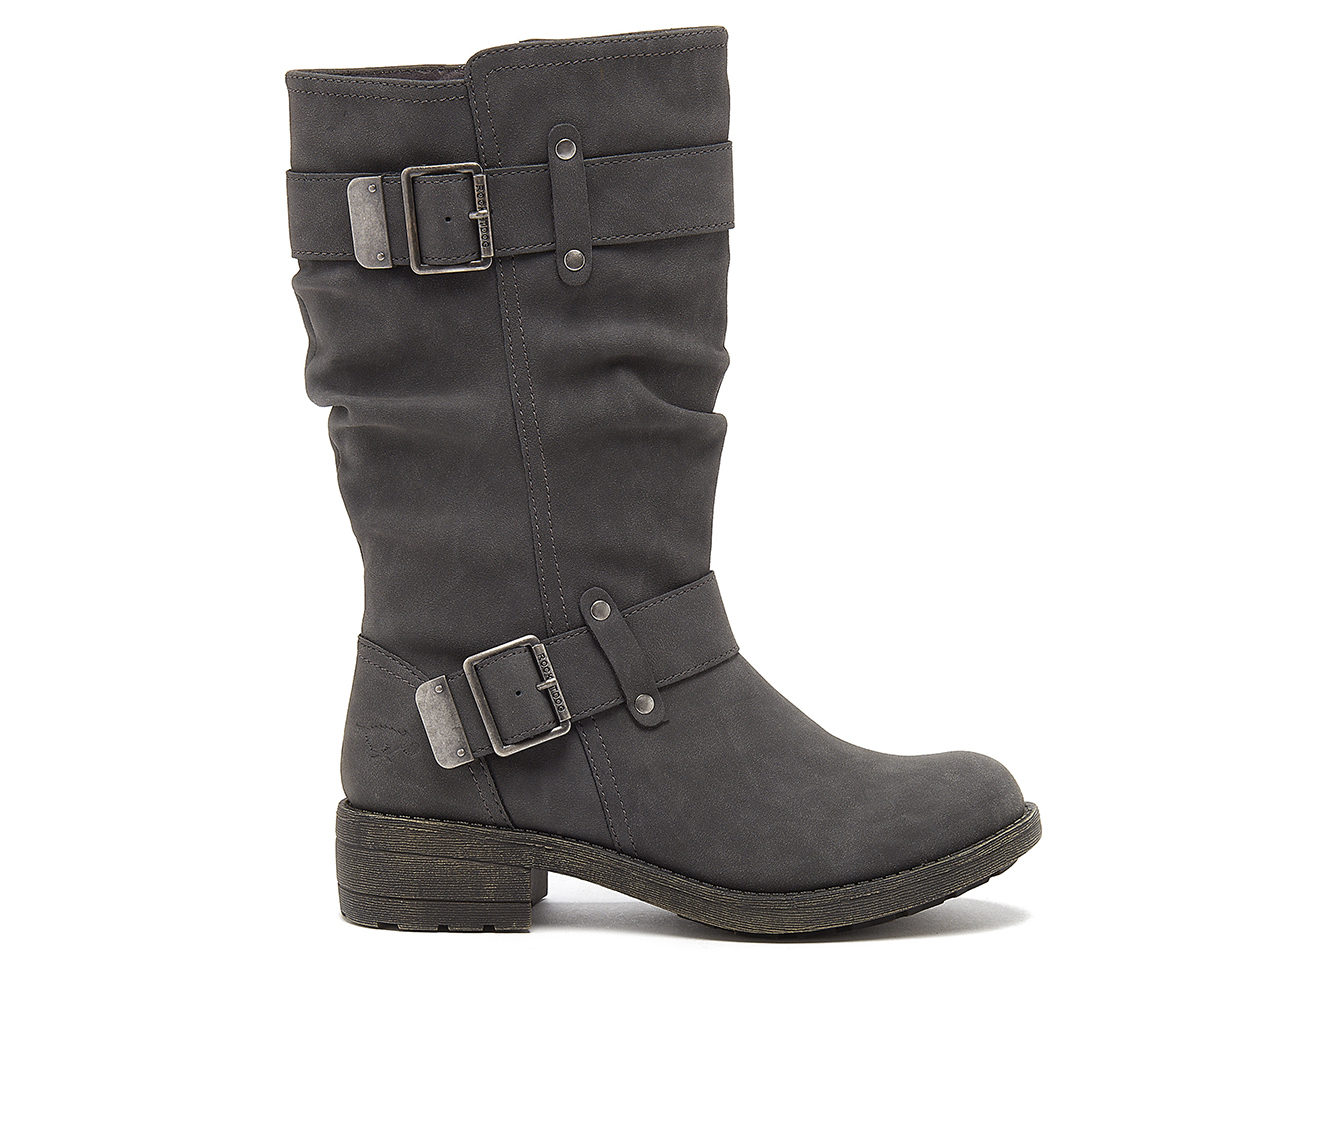 Rocket Dog Trumble Women's Boot (Gray Faux Leather)